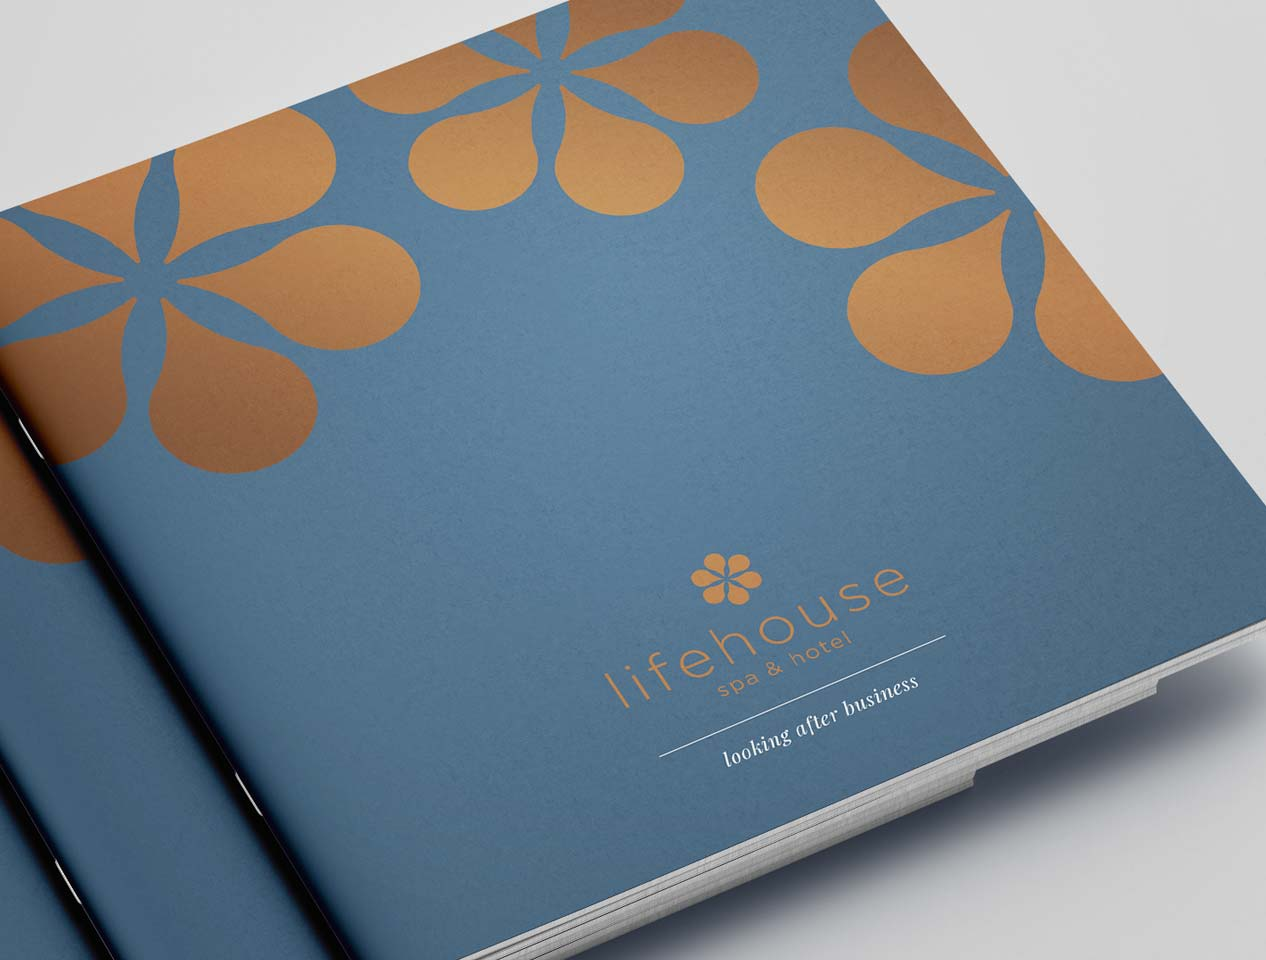 Image showing the metallic printing effects on the cover of a Lifehouse Spa and Hotel brochure